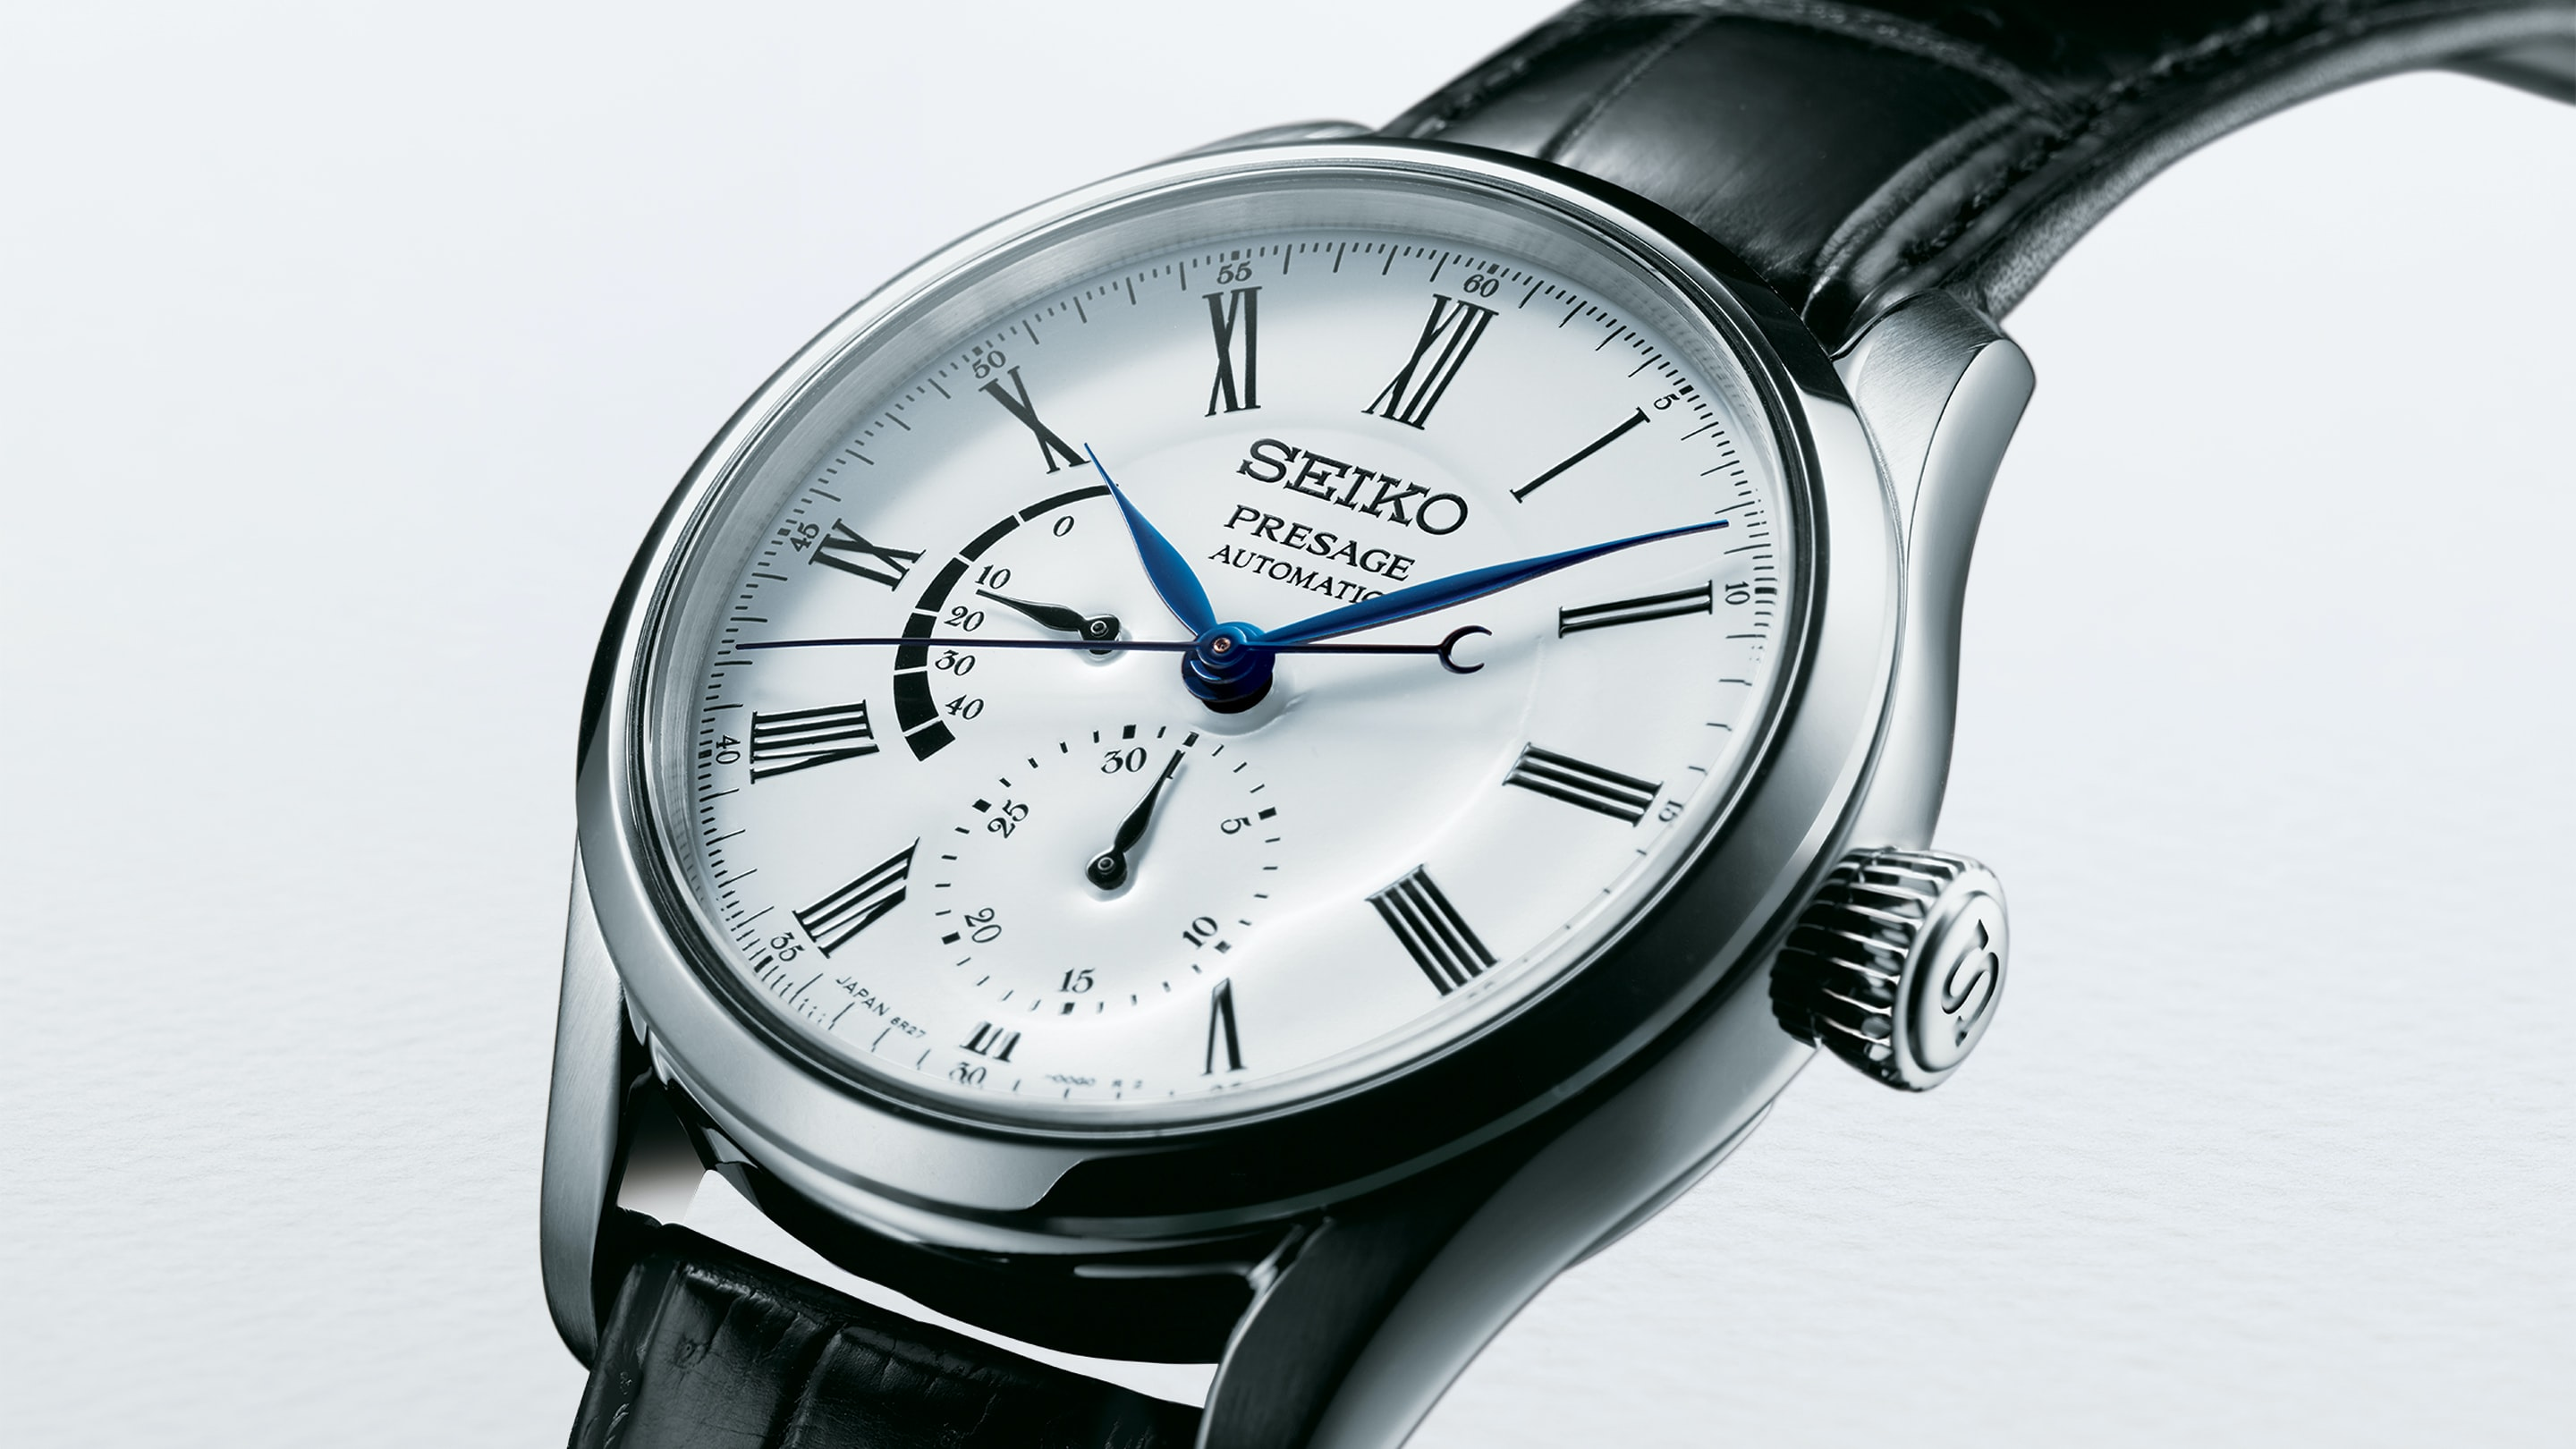 Introducing: The Seiko Presage Enamel Collection, A Quartet Of Elegant Everyday Watches